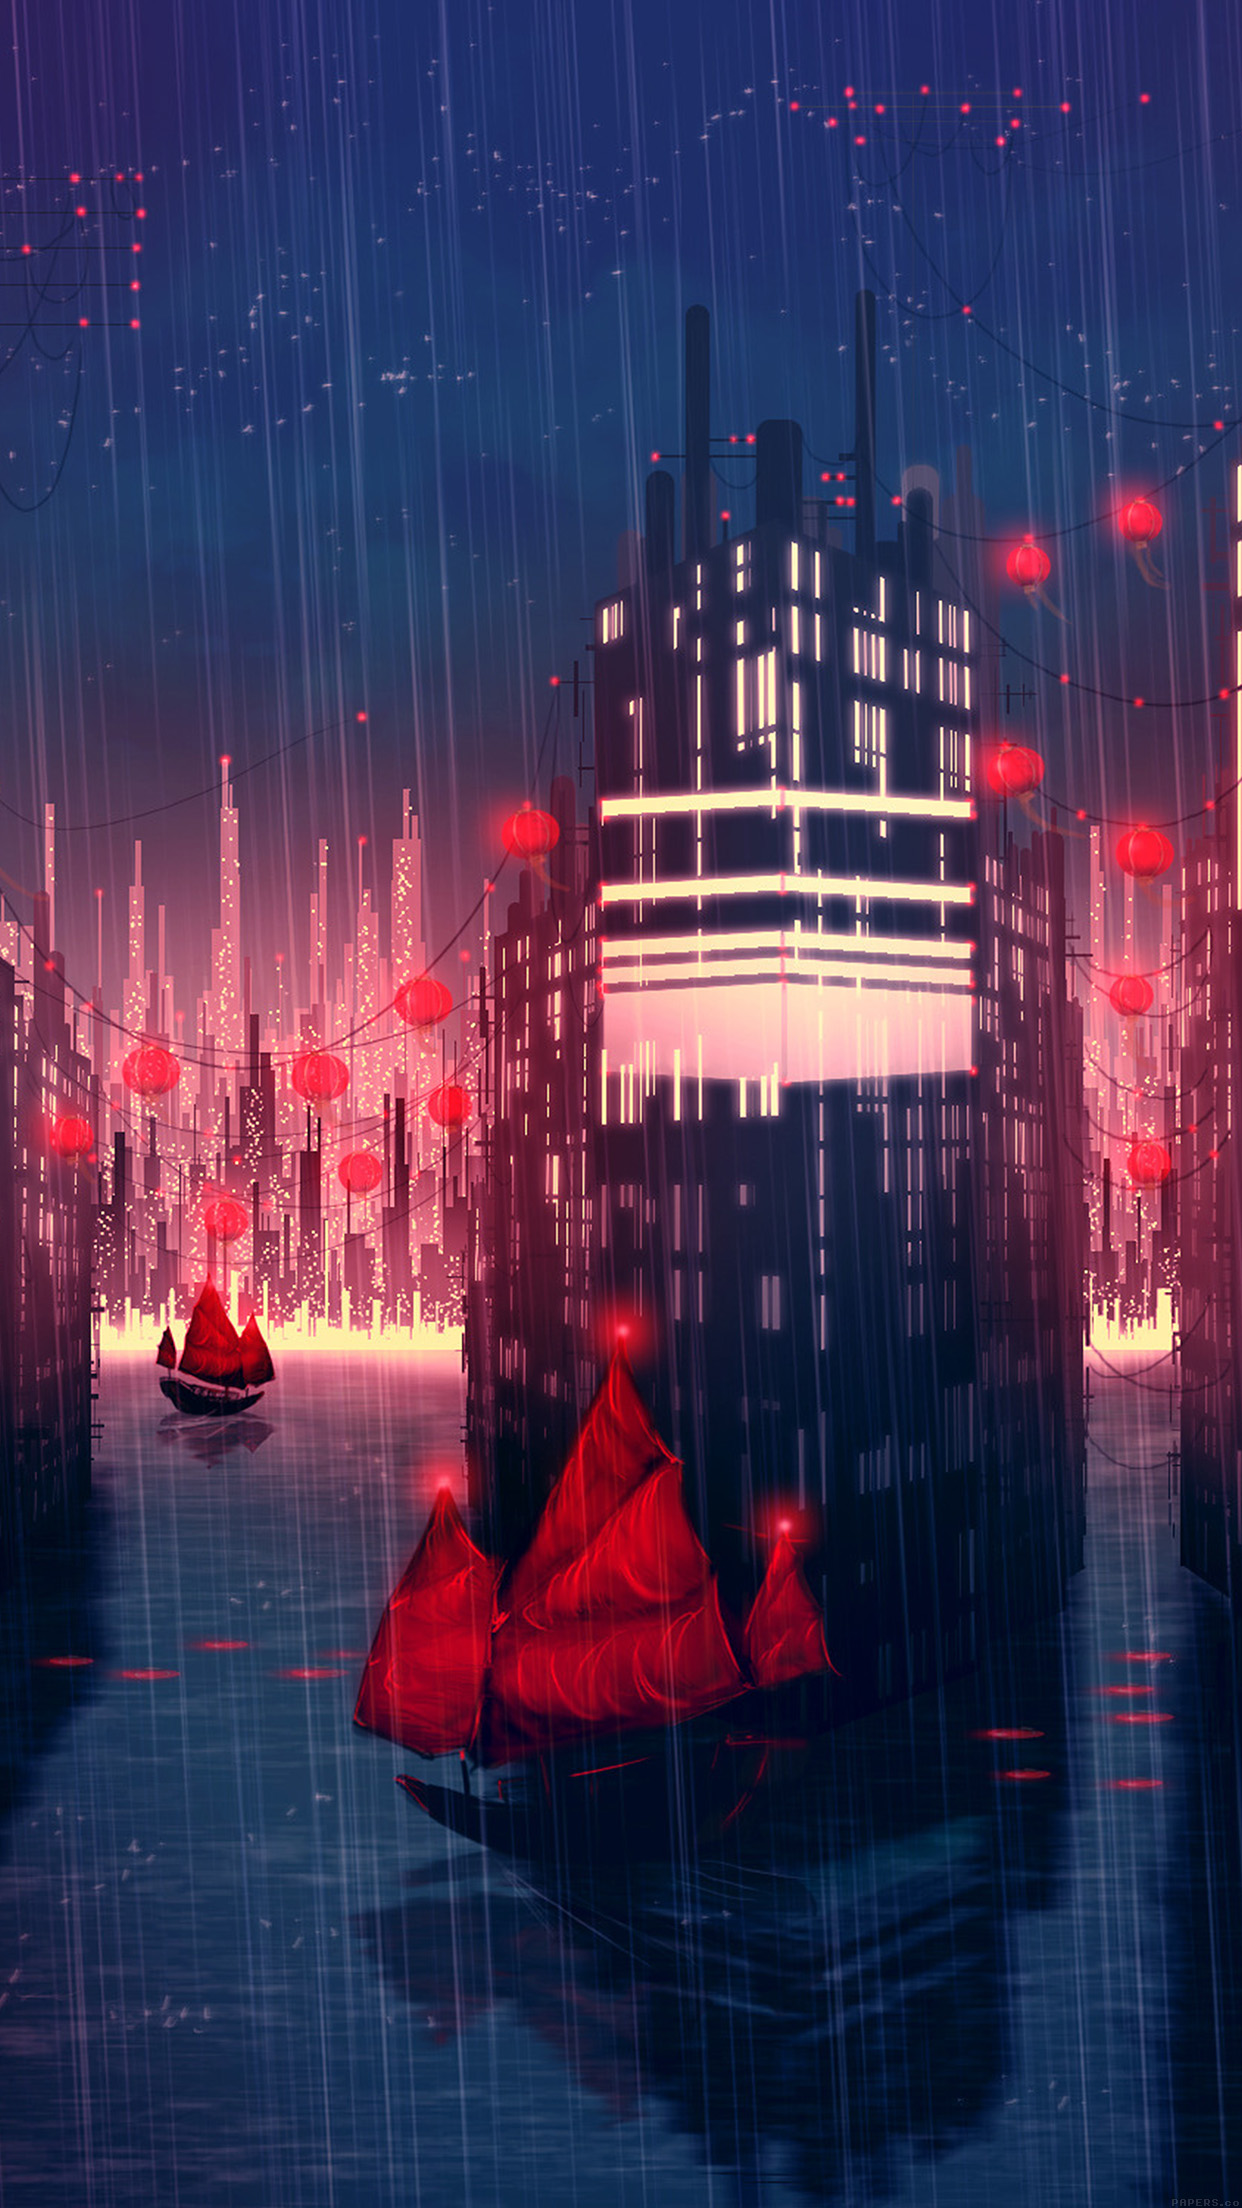 Neon Fall Wallpapers Papers Co Iphone Wallpaper Aj08 Rainy Anime City Art